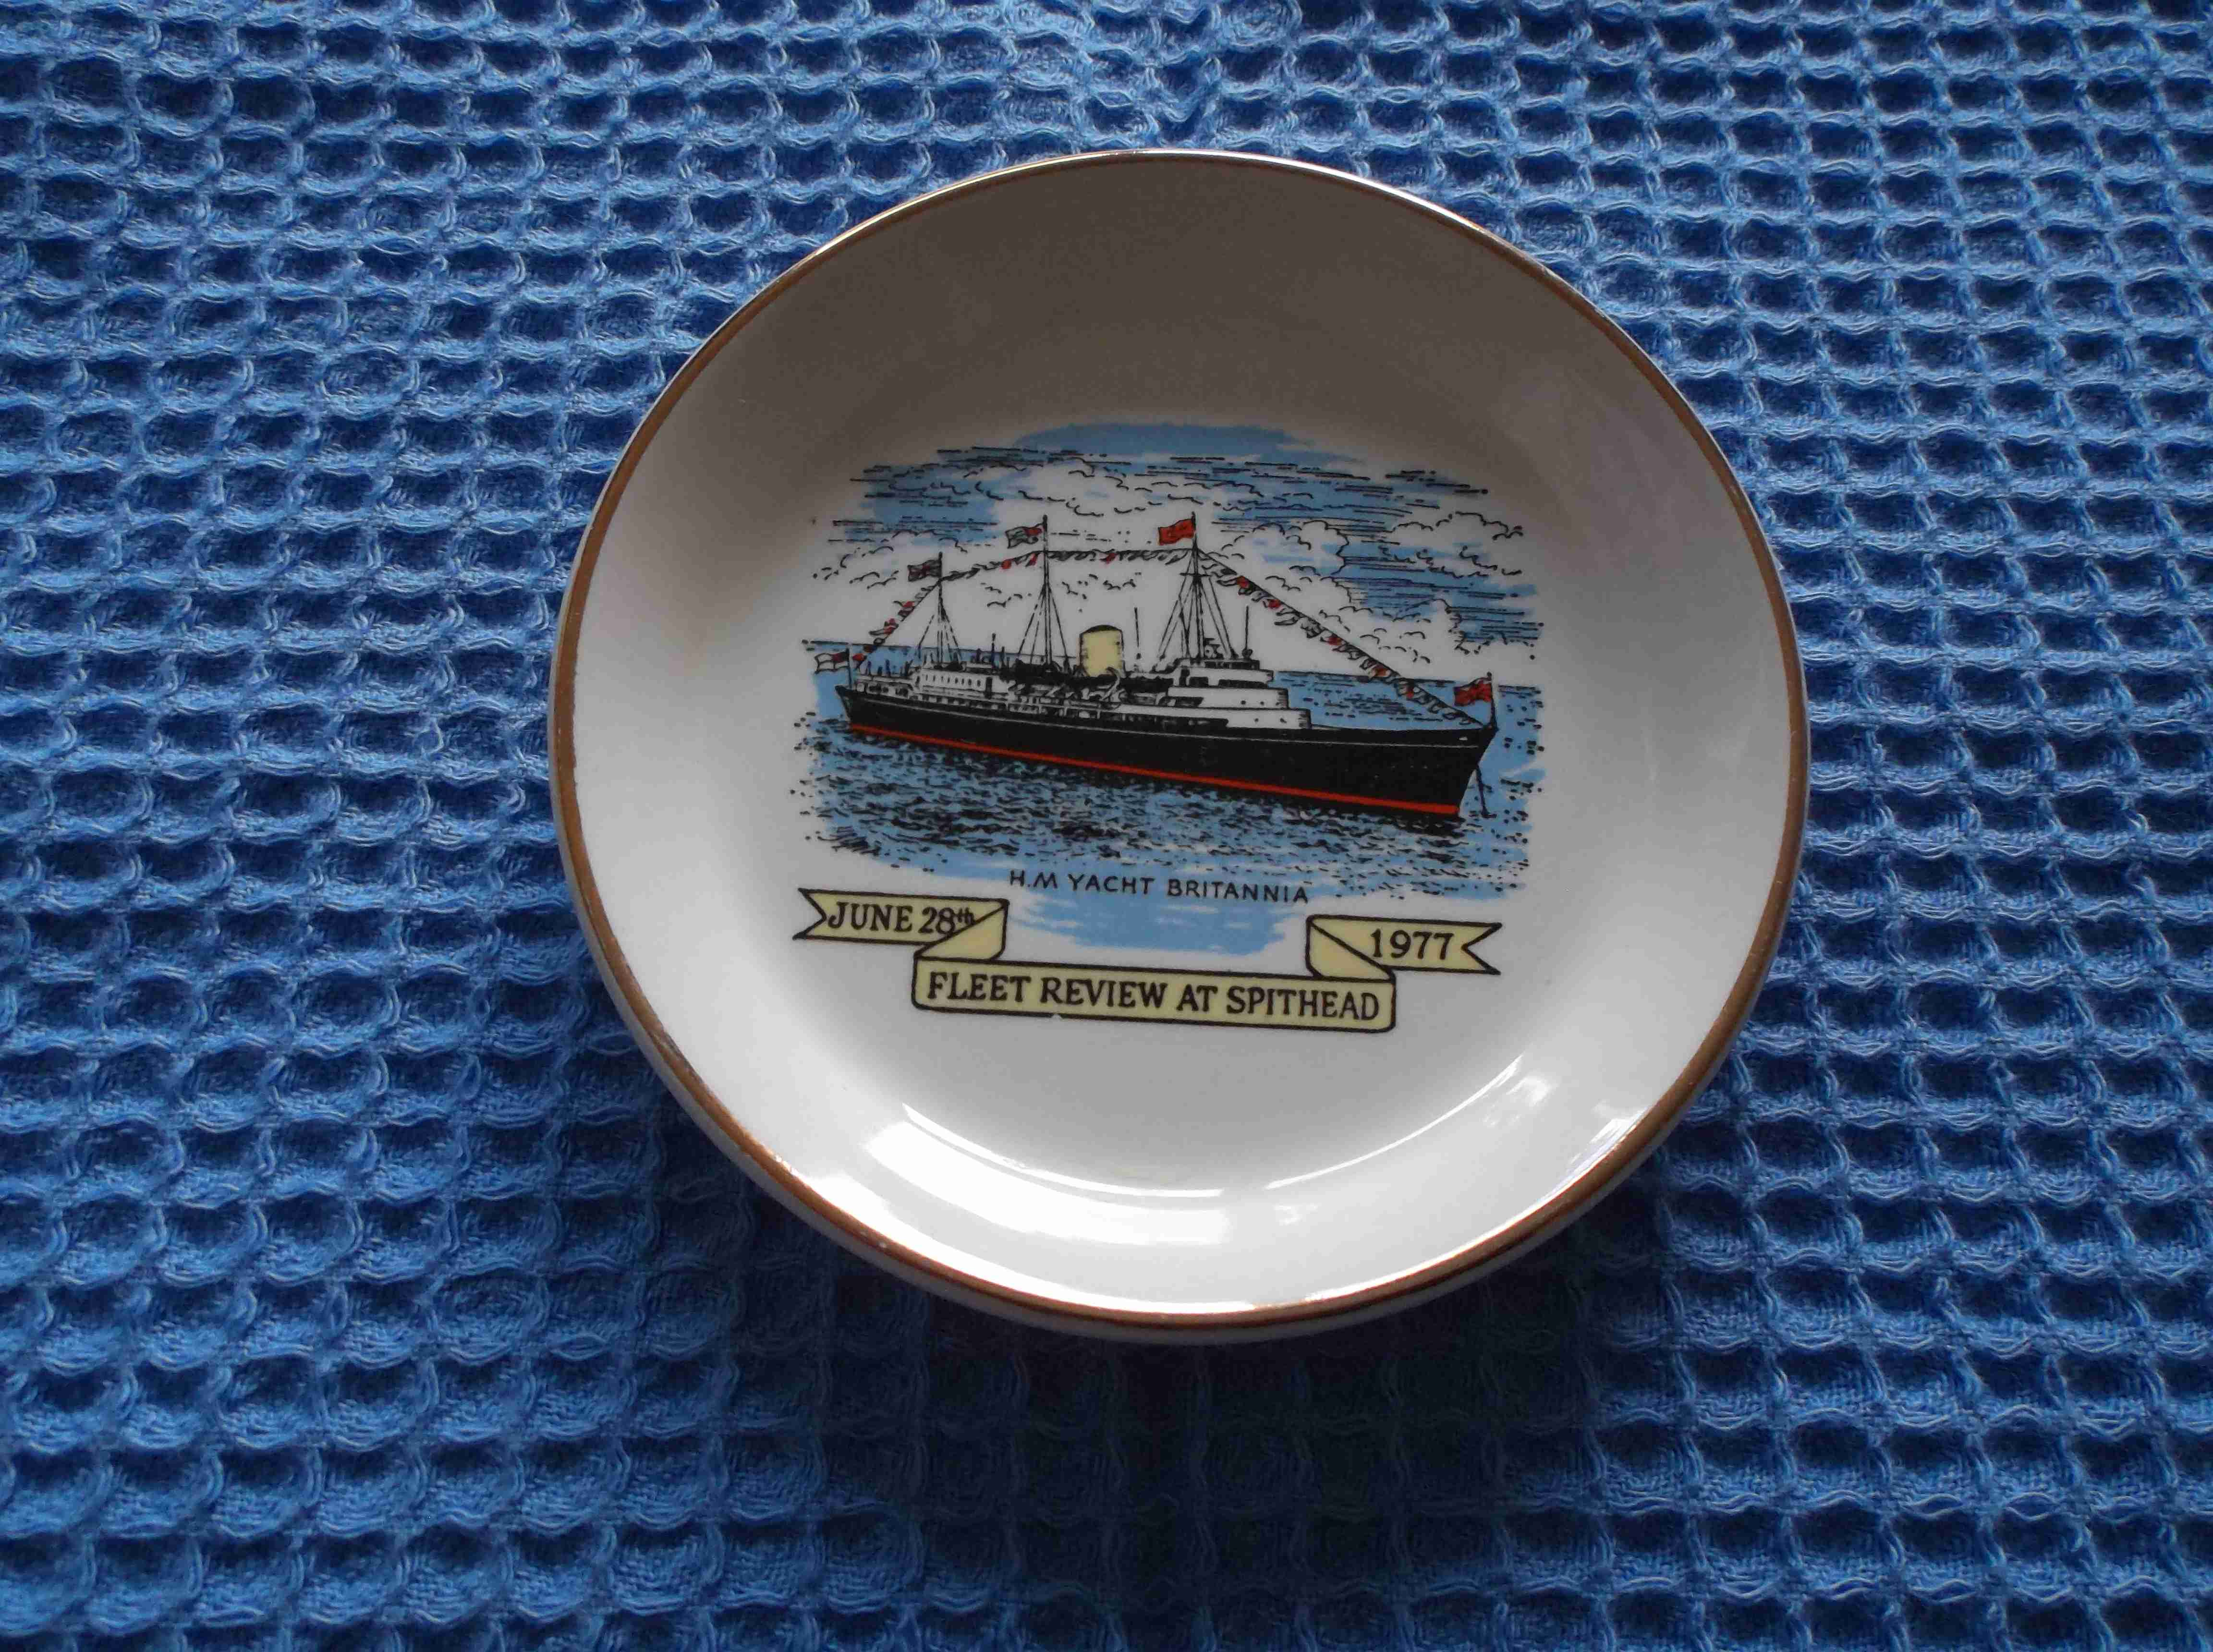 PICTURE DISH OF THE ROYAL YACHT BRITANNIA FLEET REVIEW AT SPITHEAD 1977